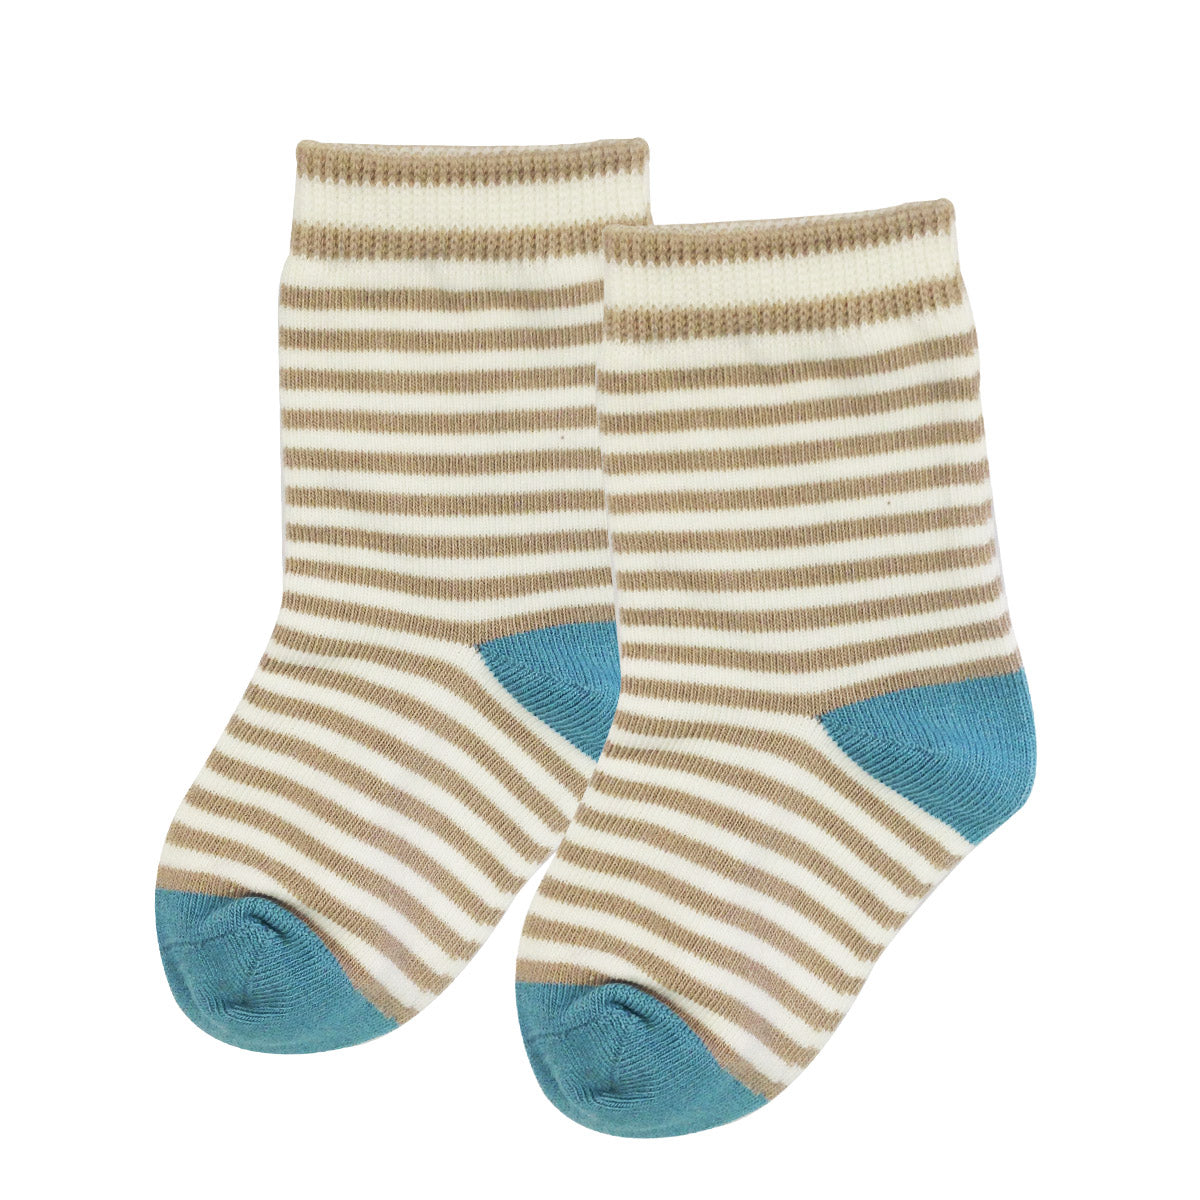 Dots and Stripes Toddler Socks (Set of 5)